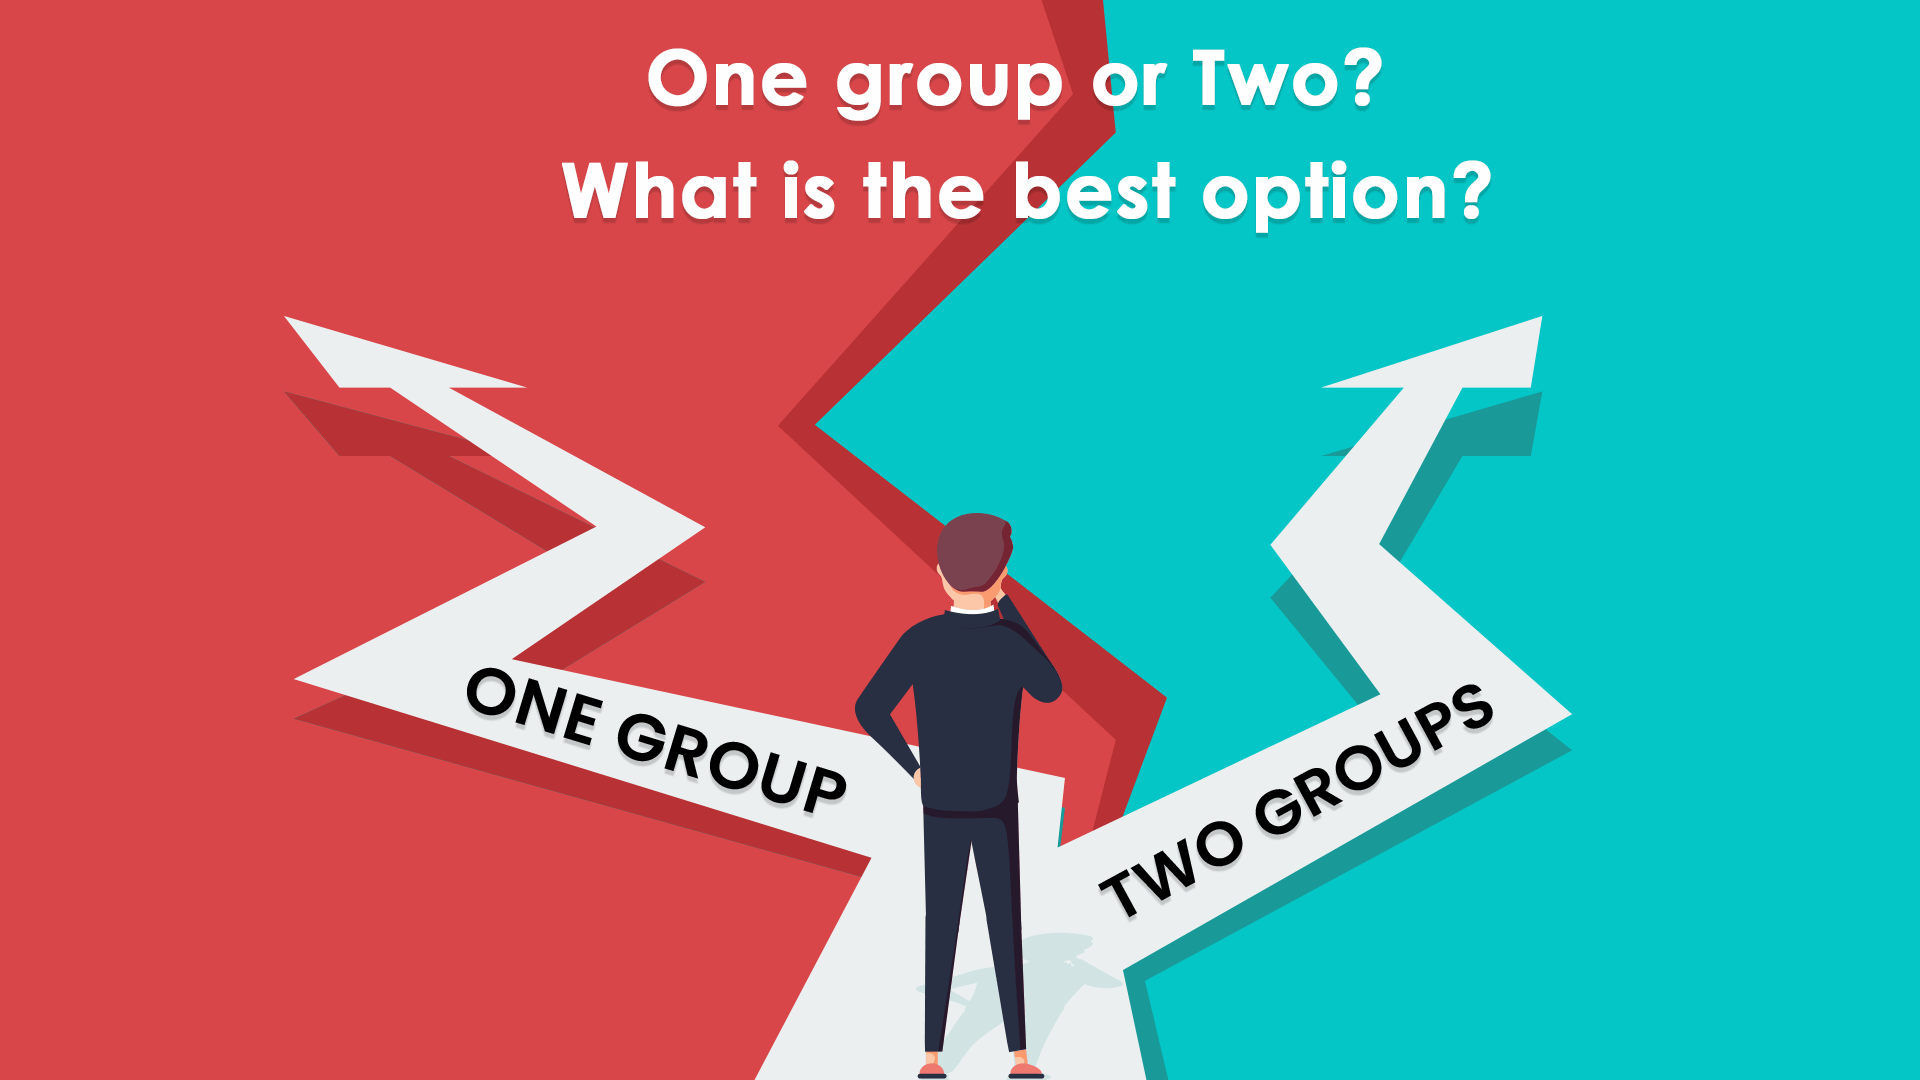 How do I decide whether to attempt one group or two groups when pursuing the CA course